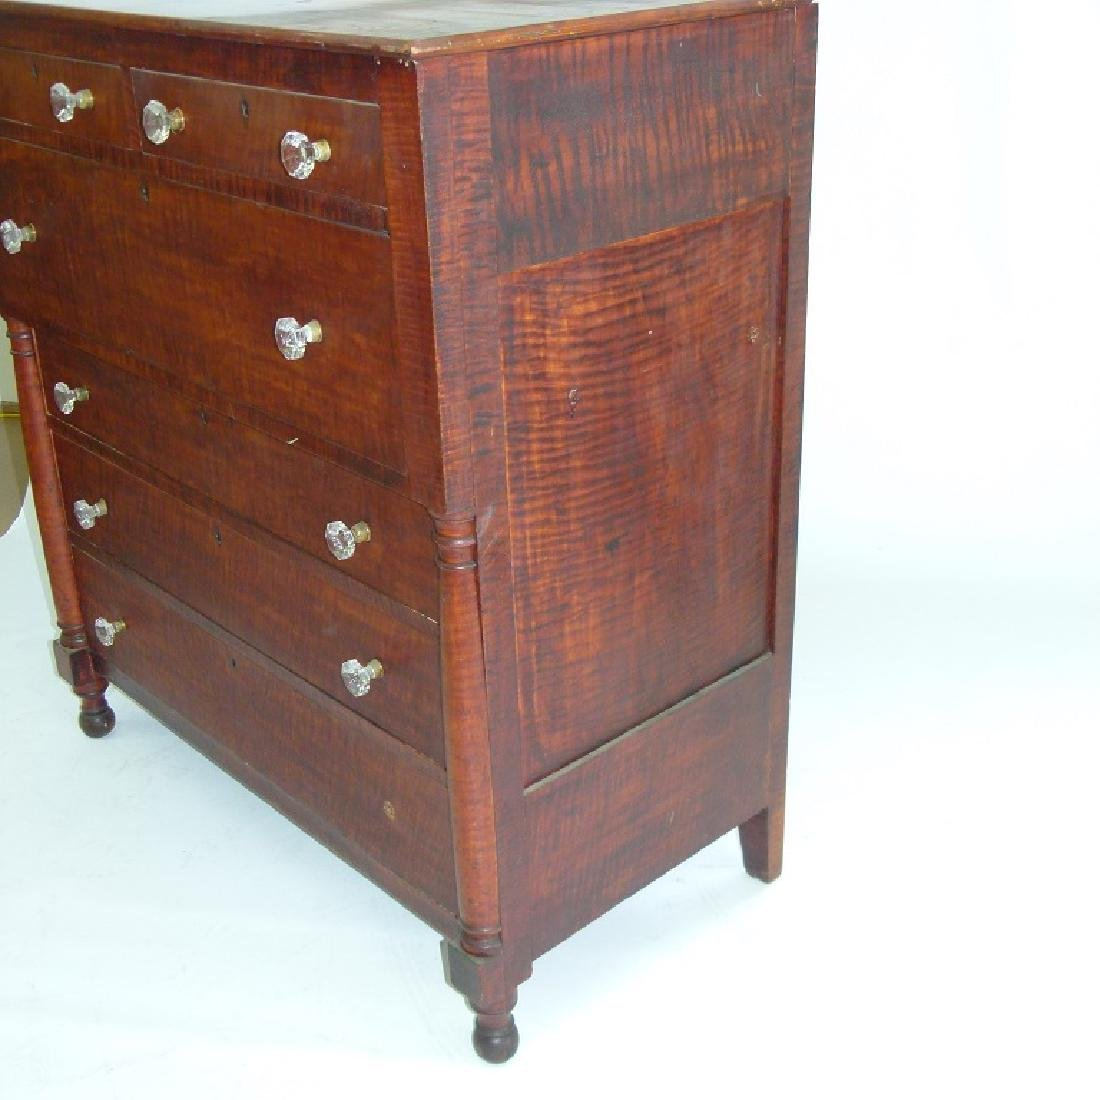 SHERATON CARVED TIGER MAPLE 2/4 CHEST OF DRAWERS - 5